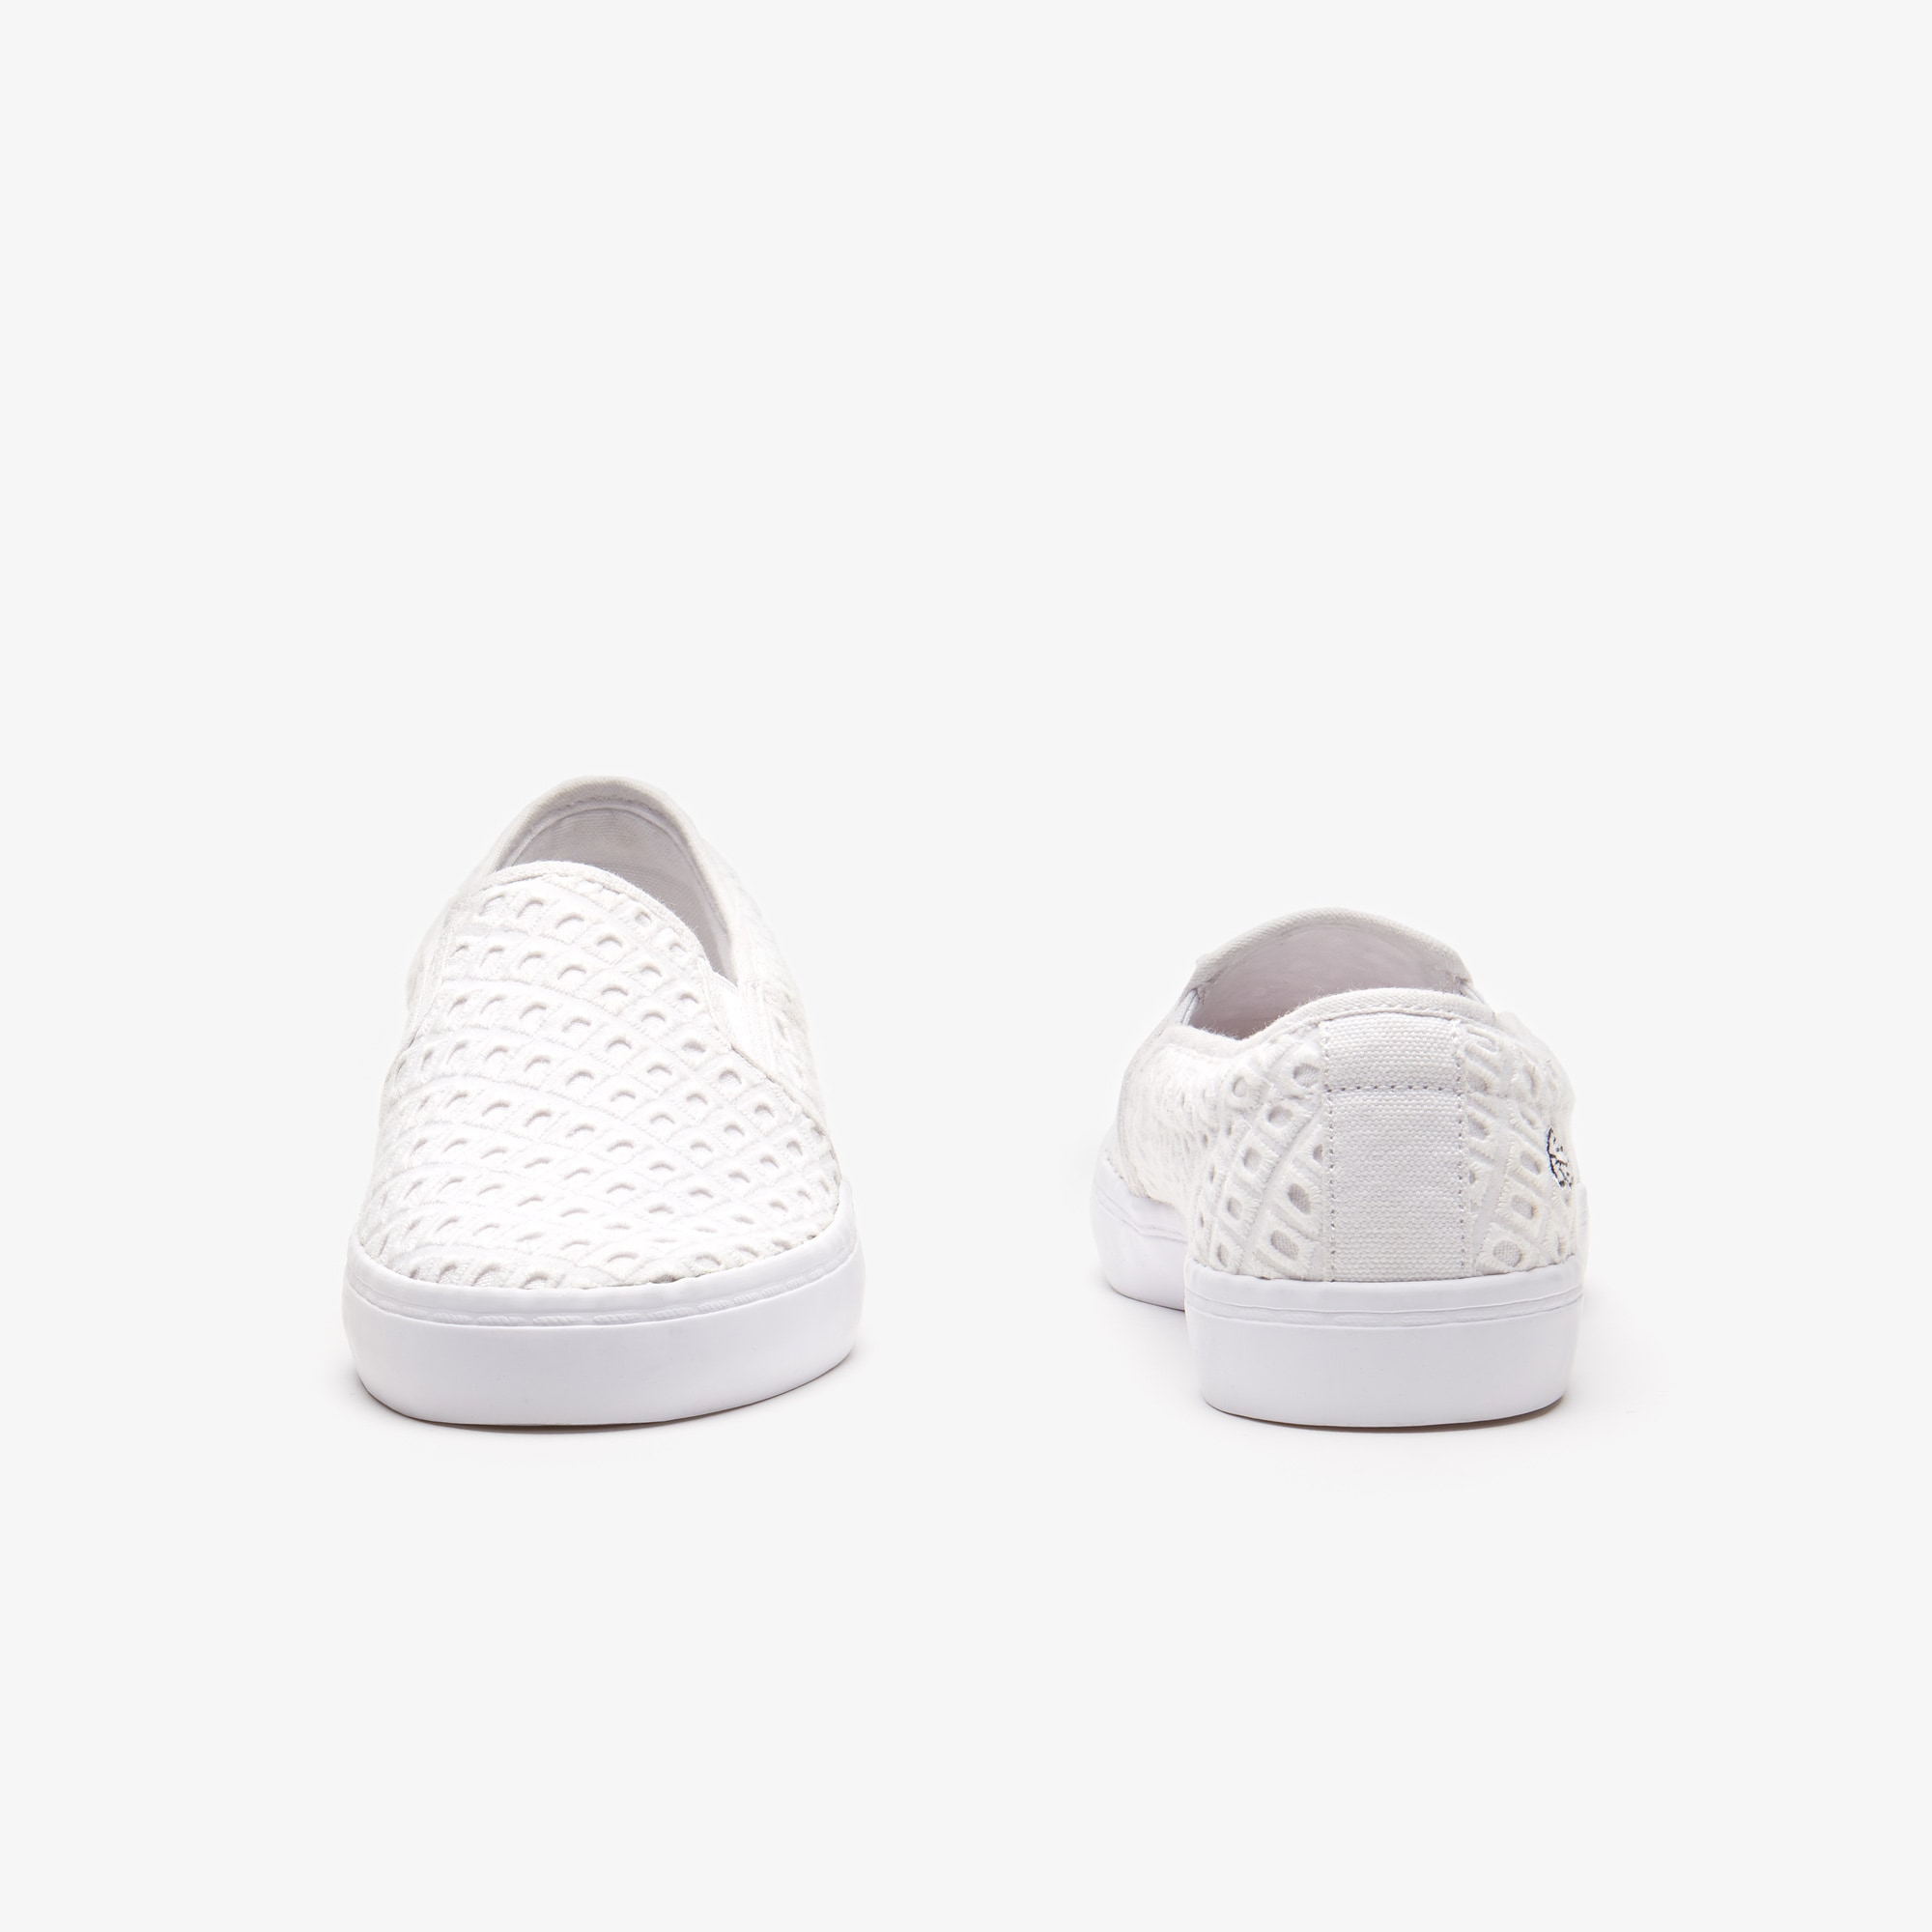 Women's Gazon Broderie Anglaise Textile Slip-ons